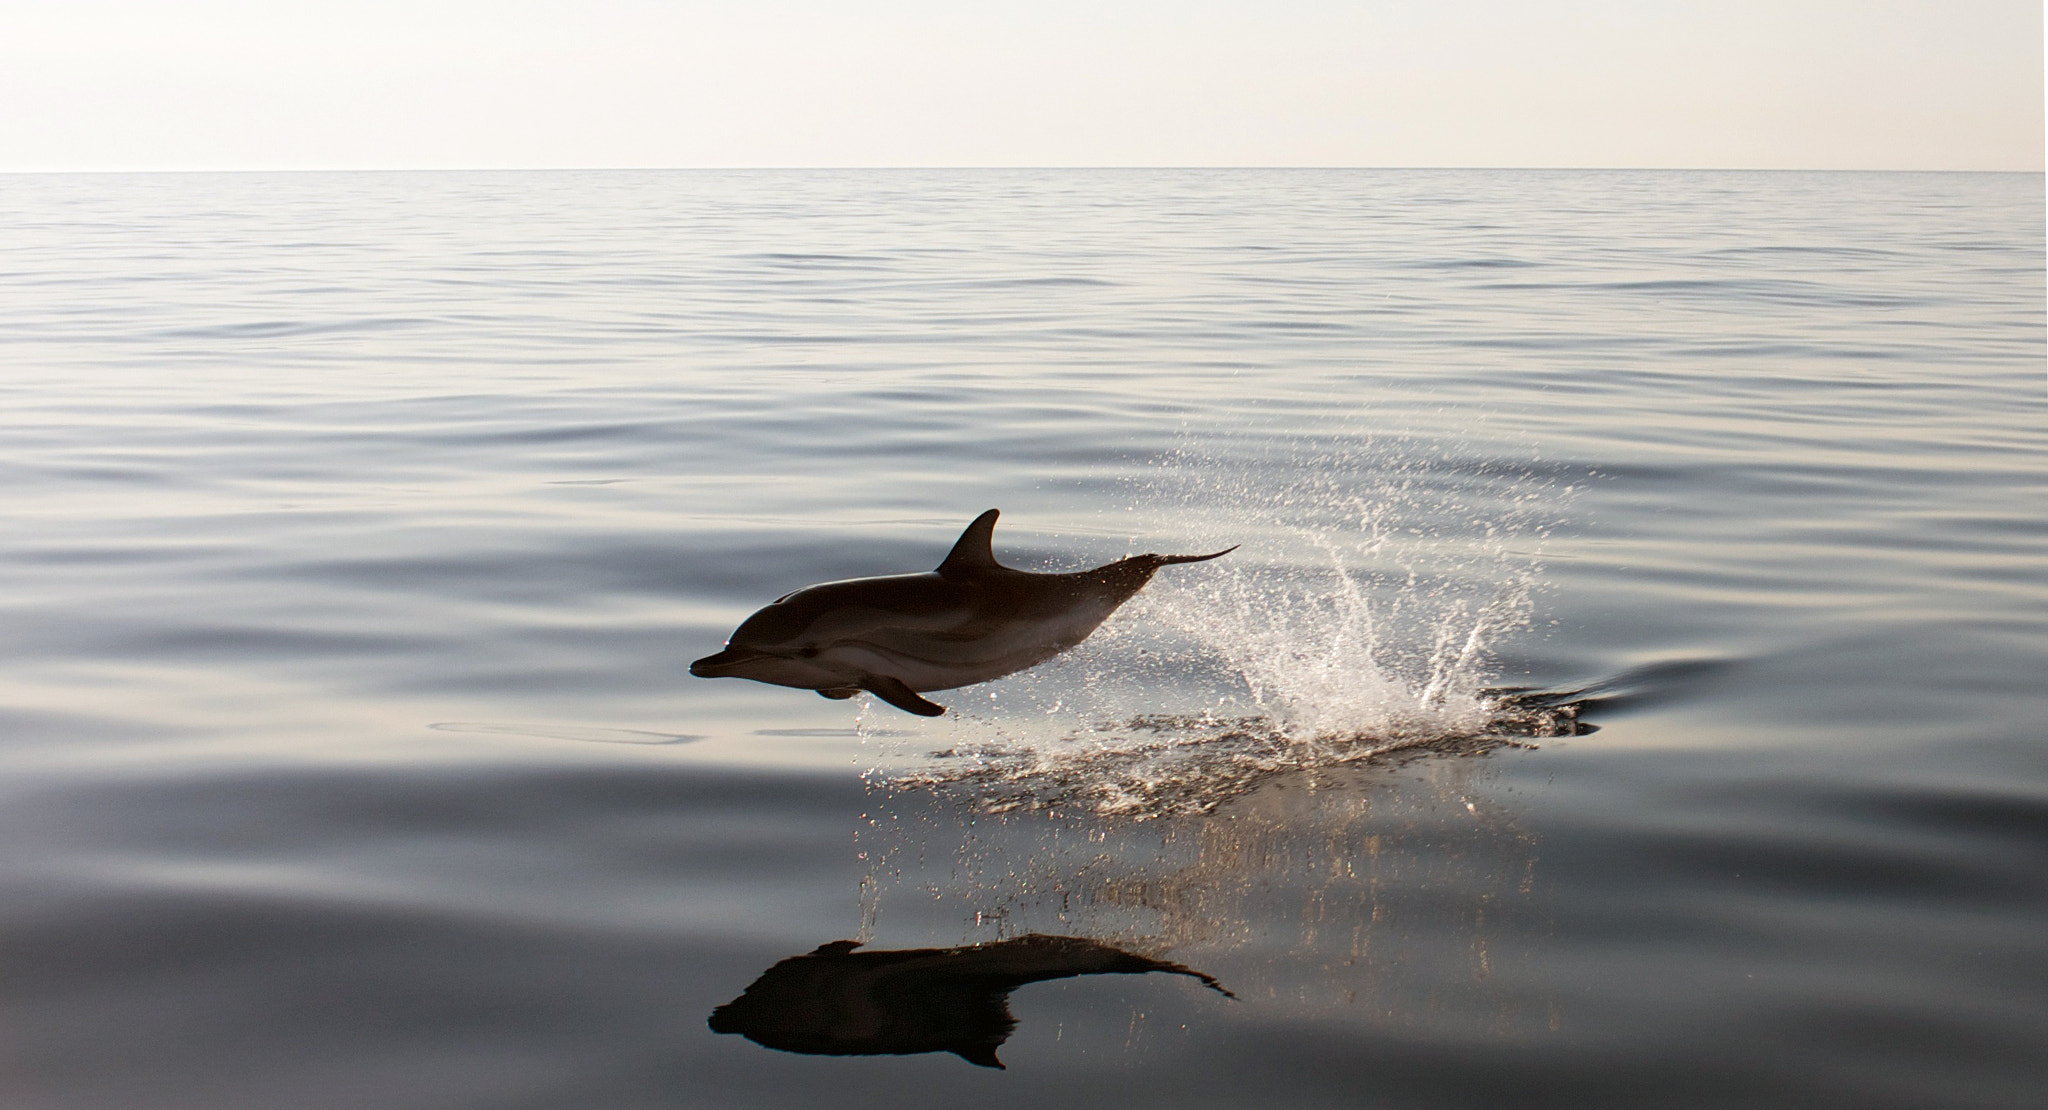 Photograph Flying Dolphin in the evening by Kostas K on 500px